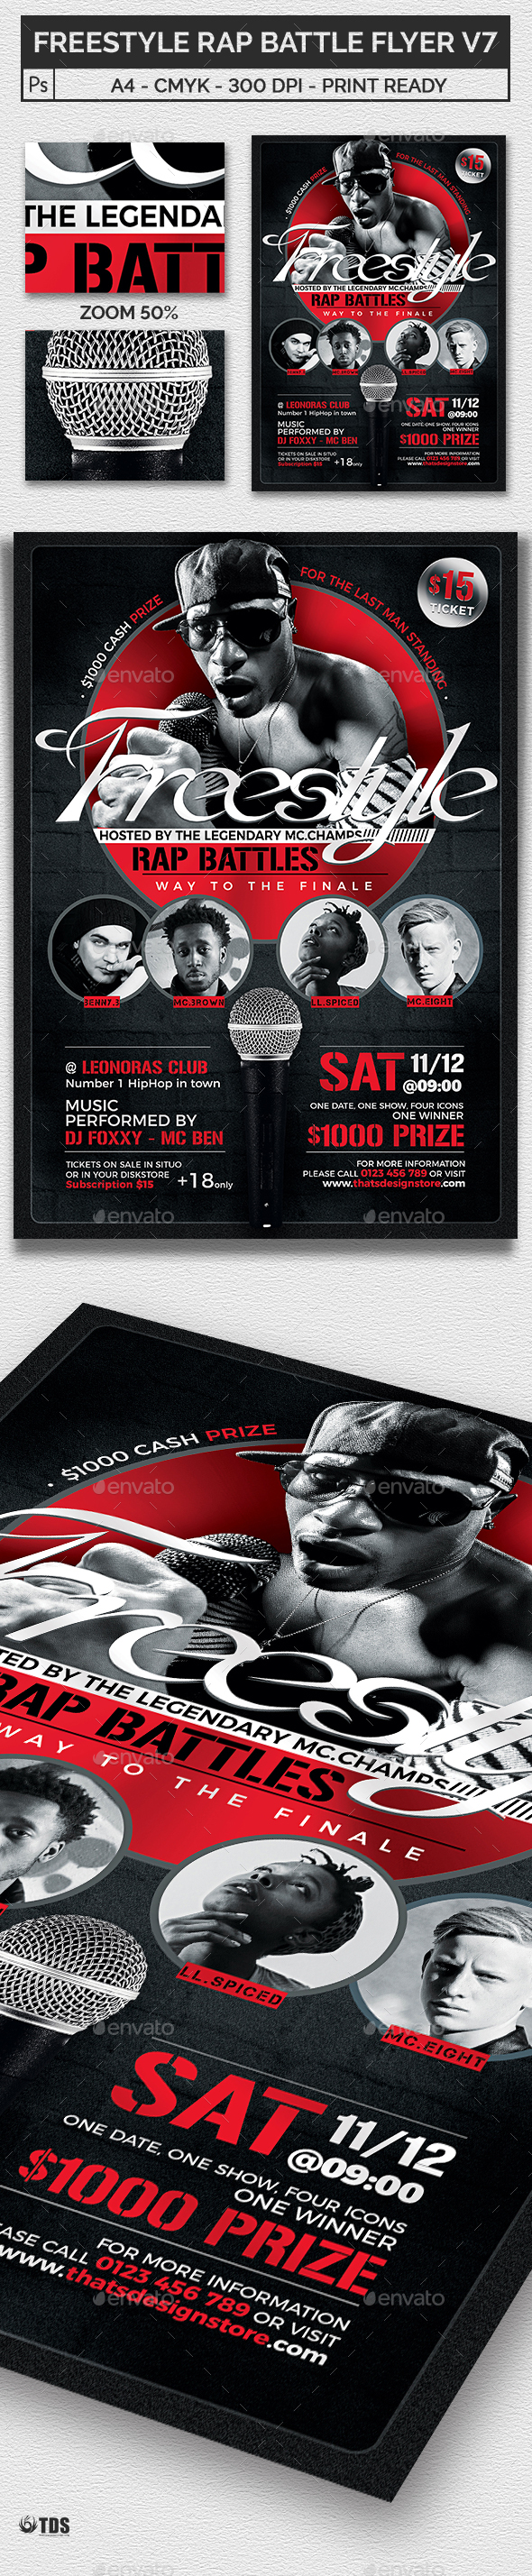 Freestyle Rap Battle Flyer Template V7 - Clubs & Parties Events